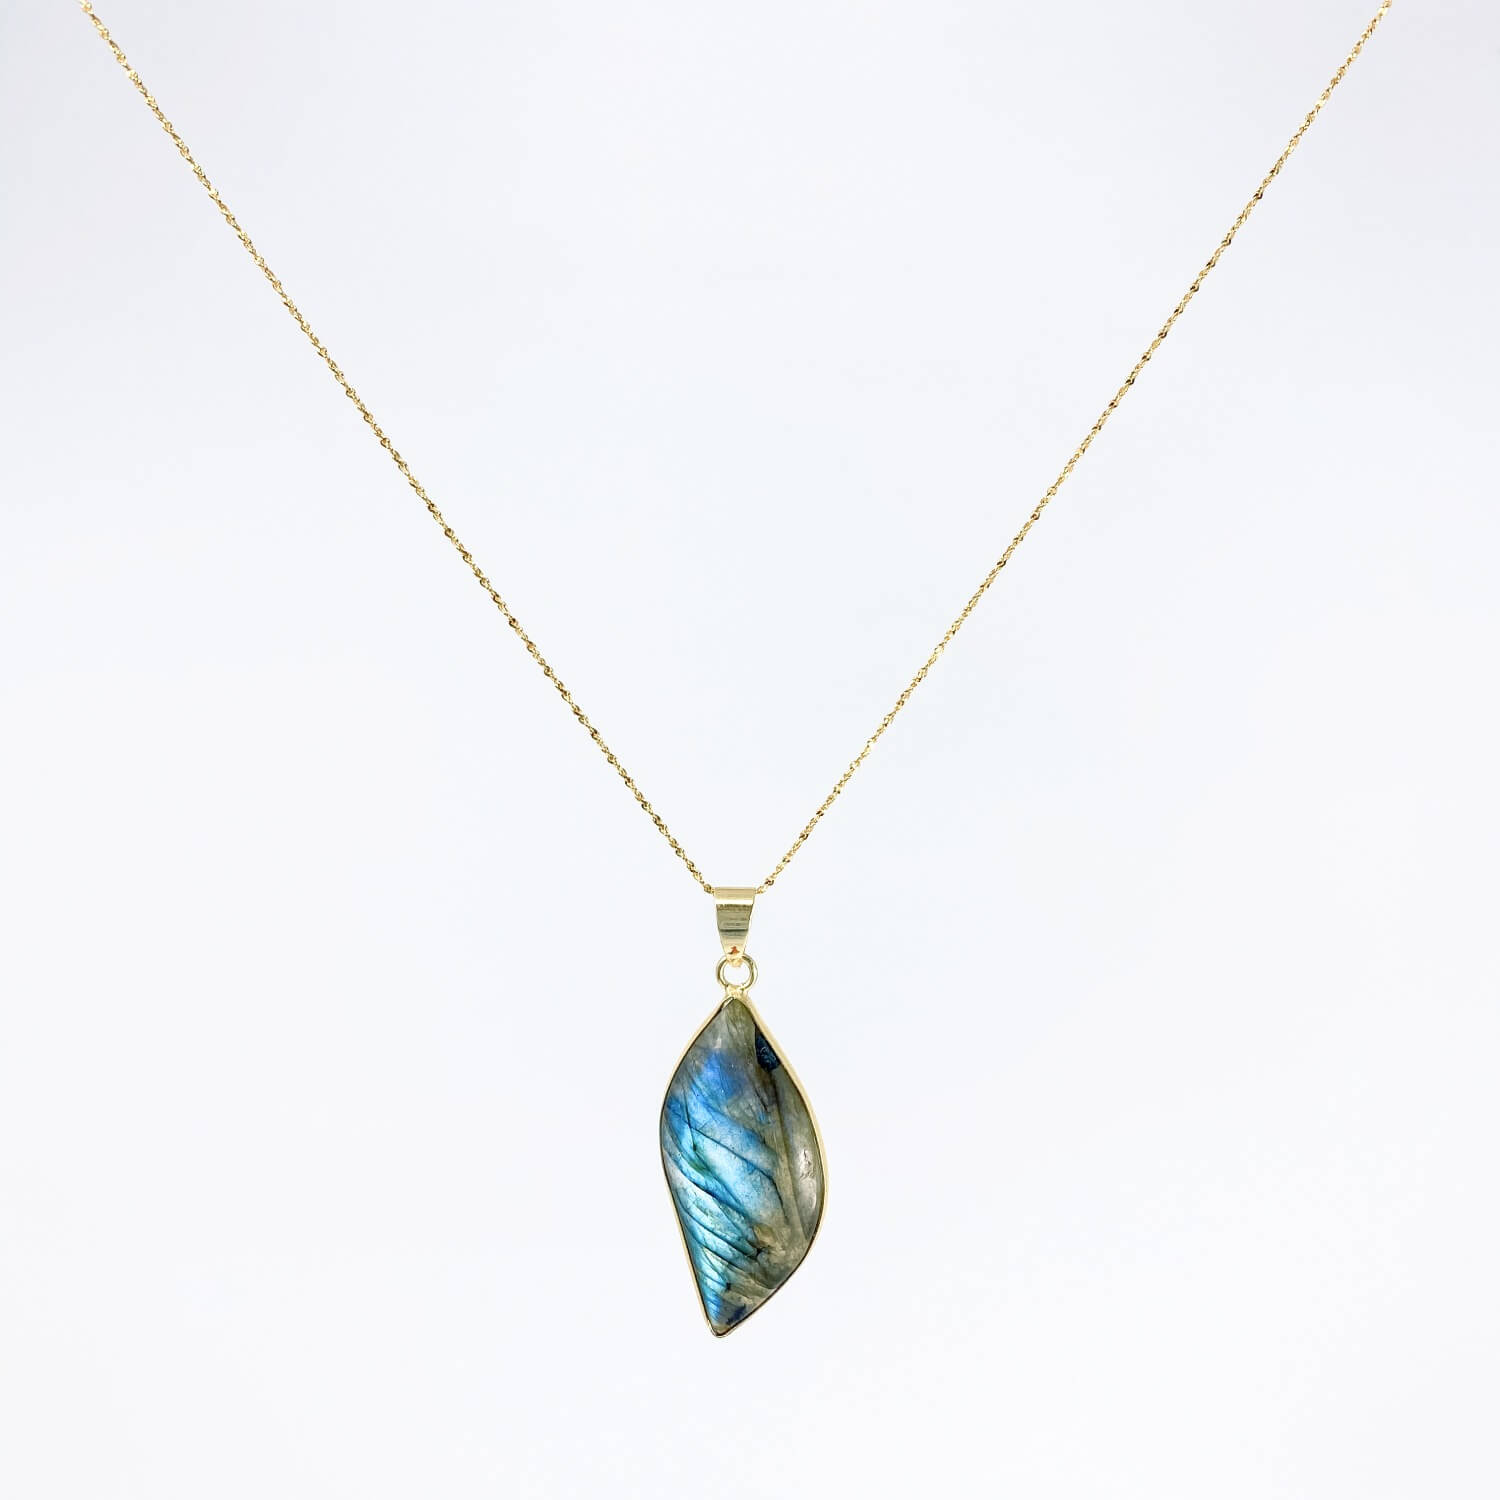 labradorite necklace 18k gold plated silver healing jewelry